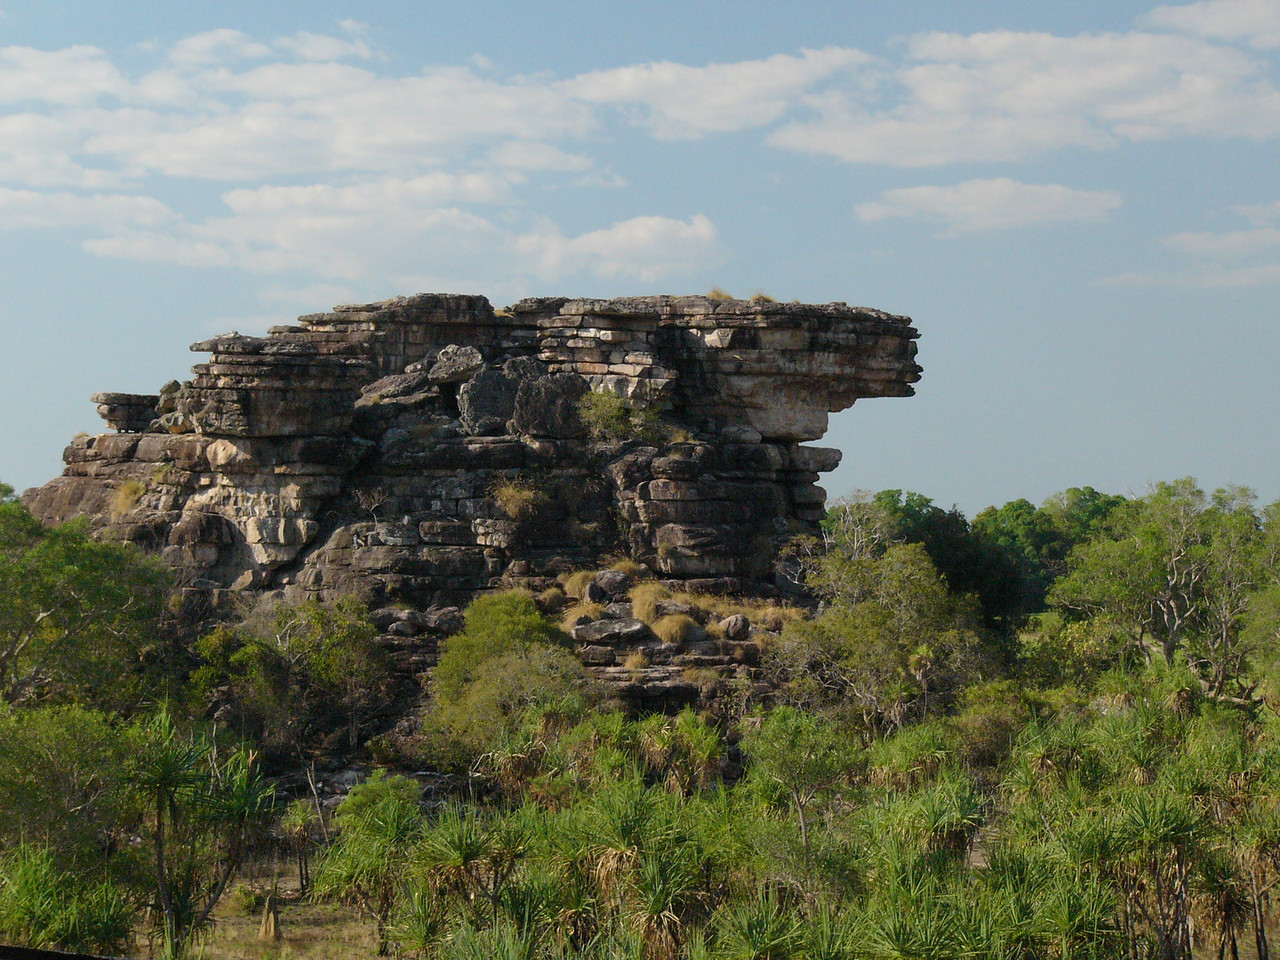 Ubirr, Kakadu National Park. View on the way up to Nadab lookout.